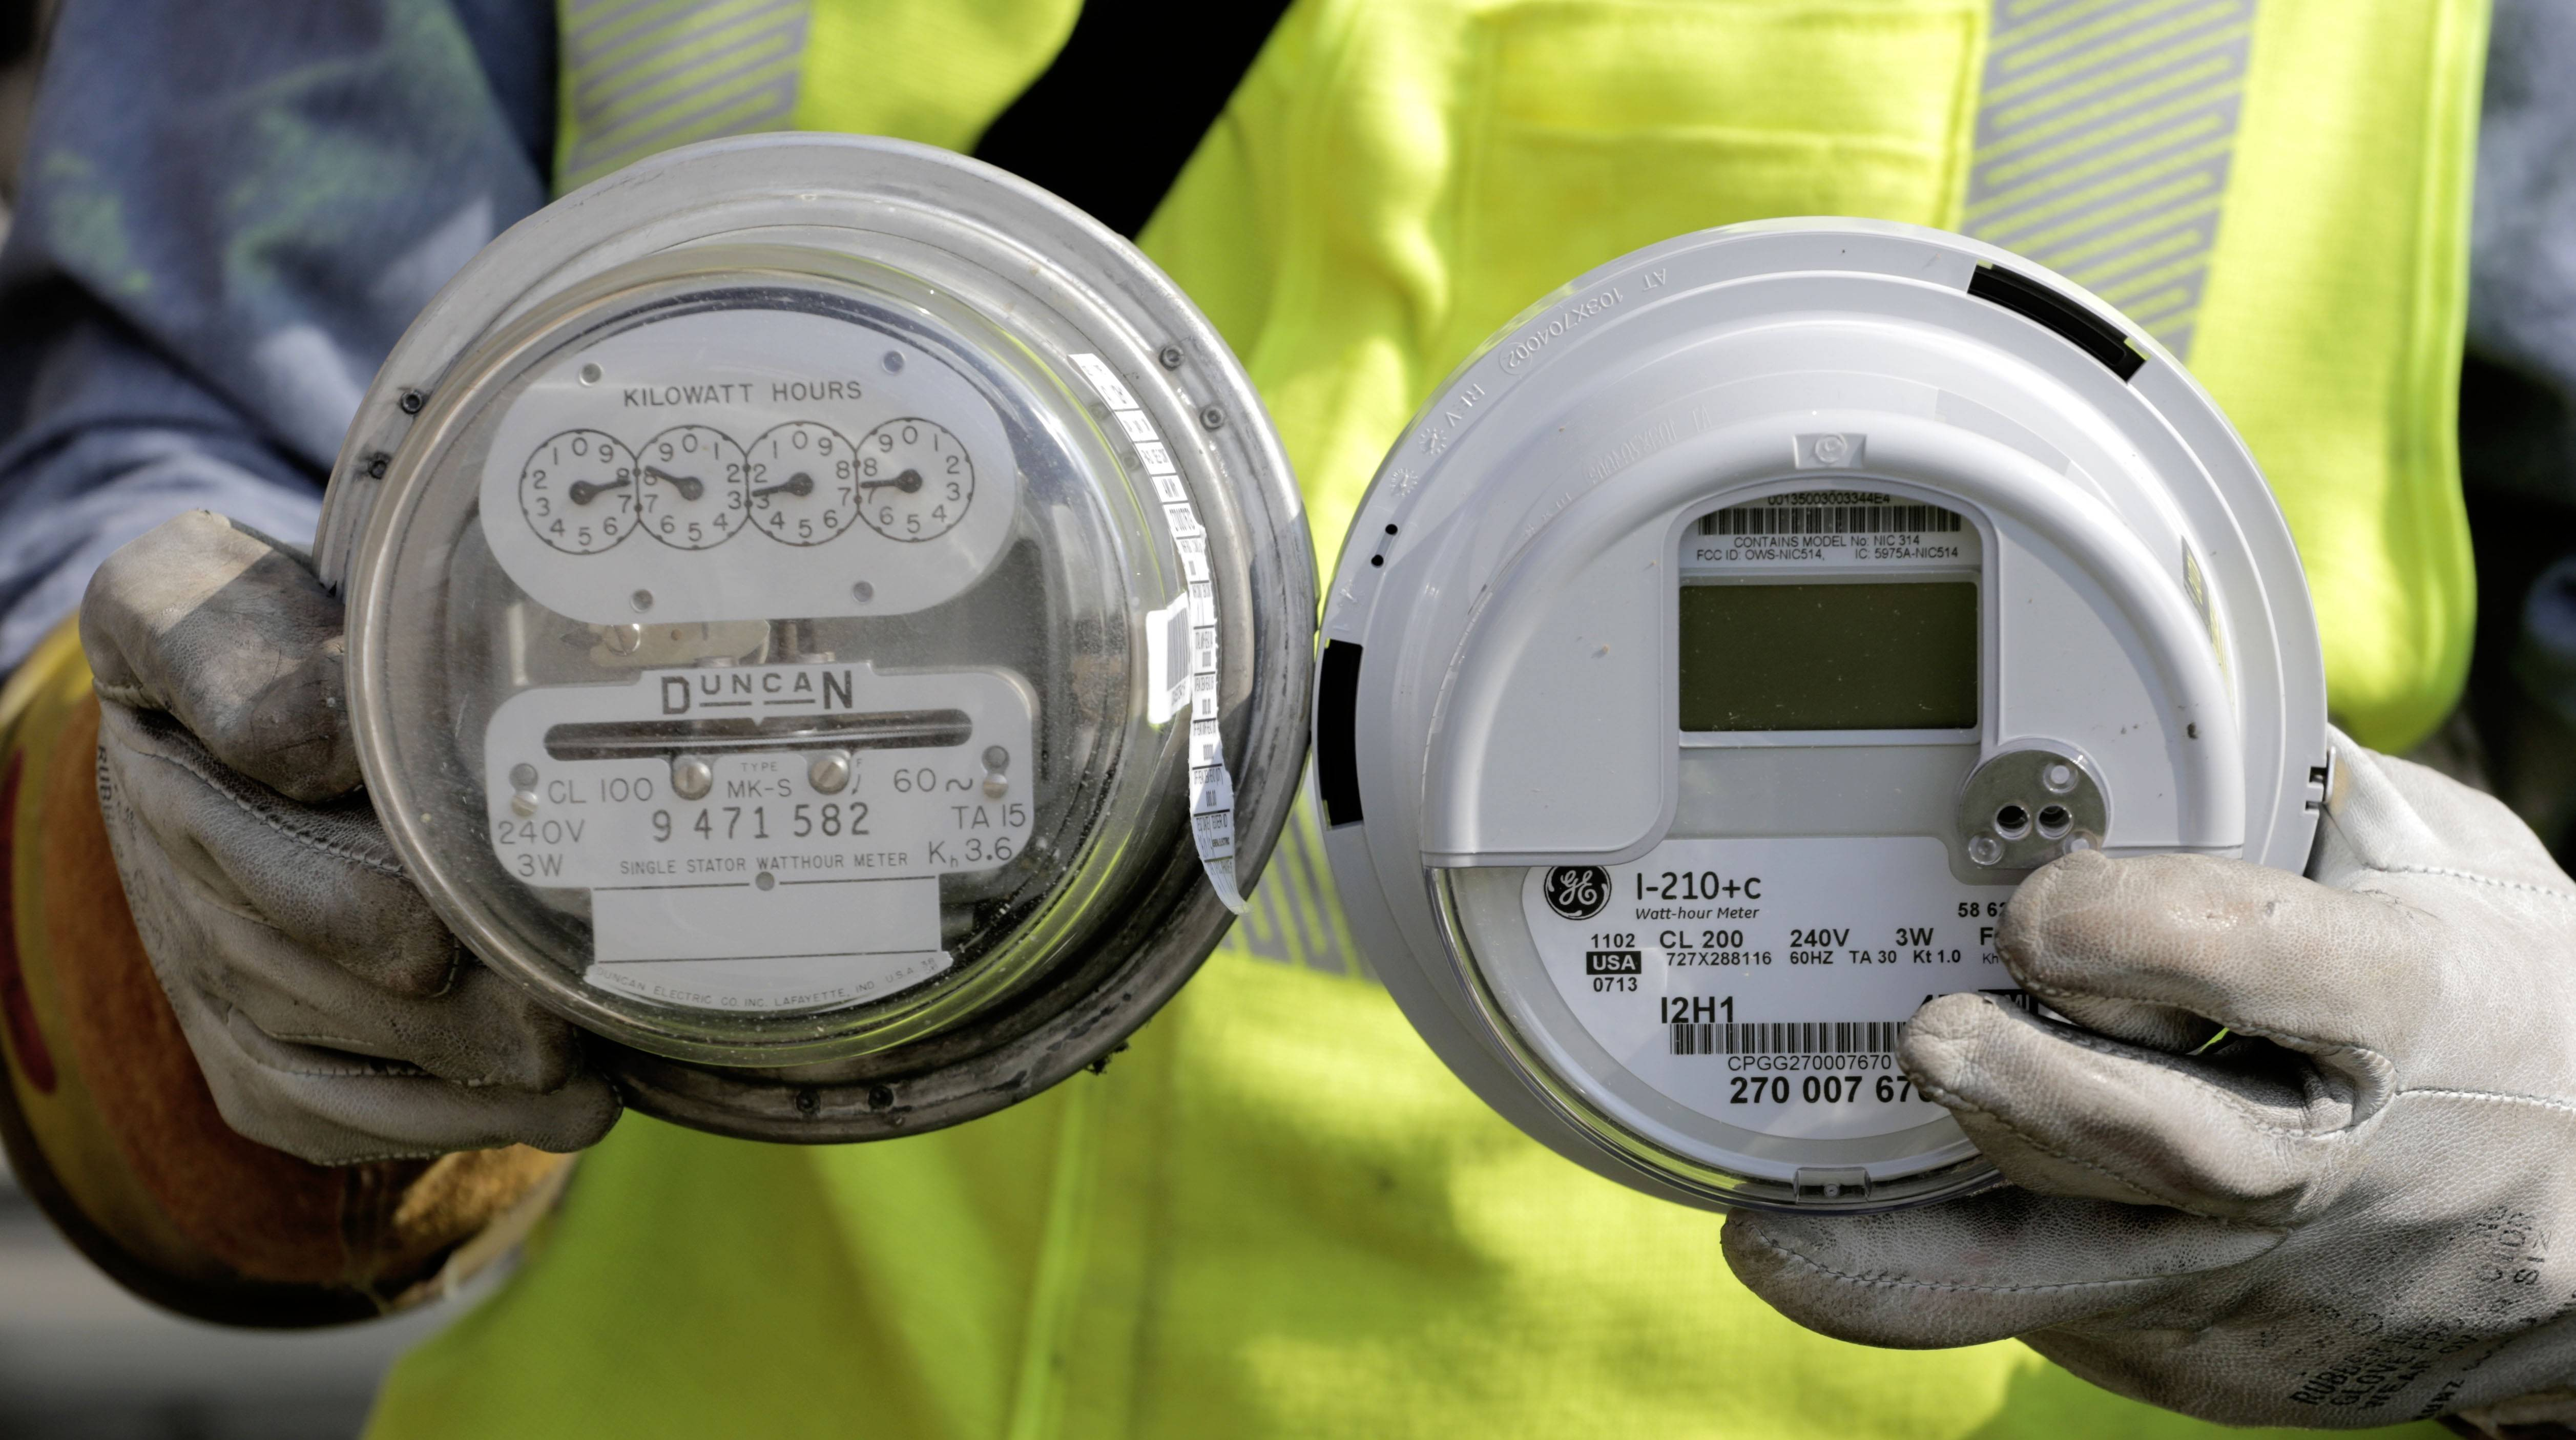 All Arlington Heights residents will have smart meters, like the one on the right here compared to an old one on the left, by October 2015, ComEd says.